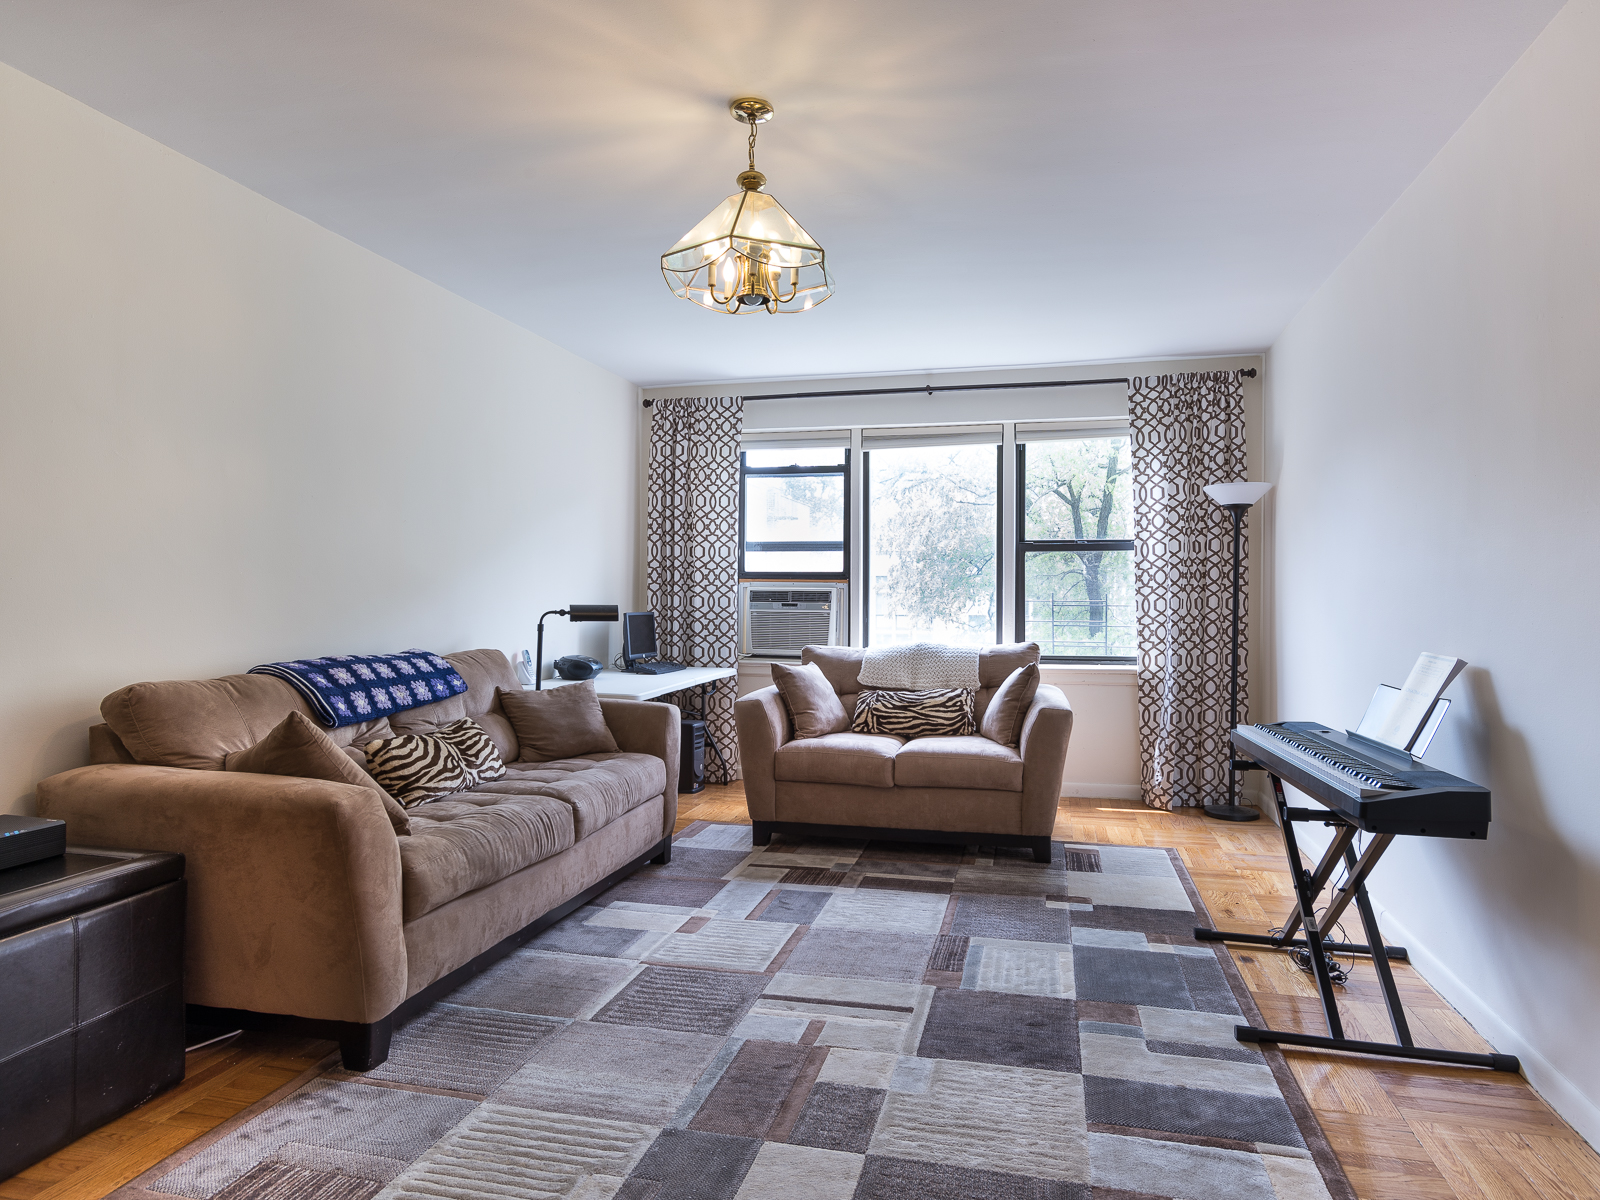 Co-op for Rent at Large and Bright 2 Bedroom 620 West 239 Street 5B Riverdale, New York 10463 United States